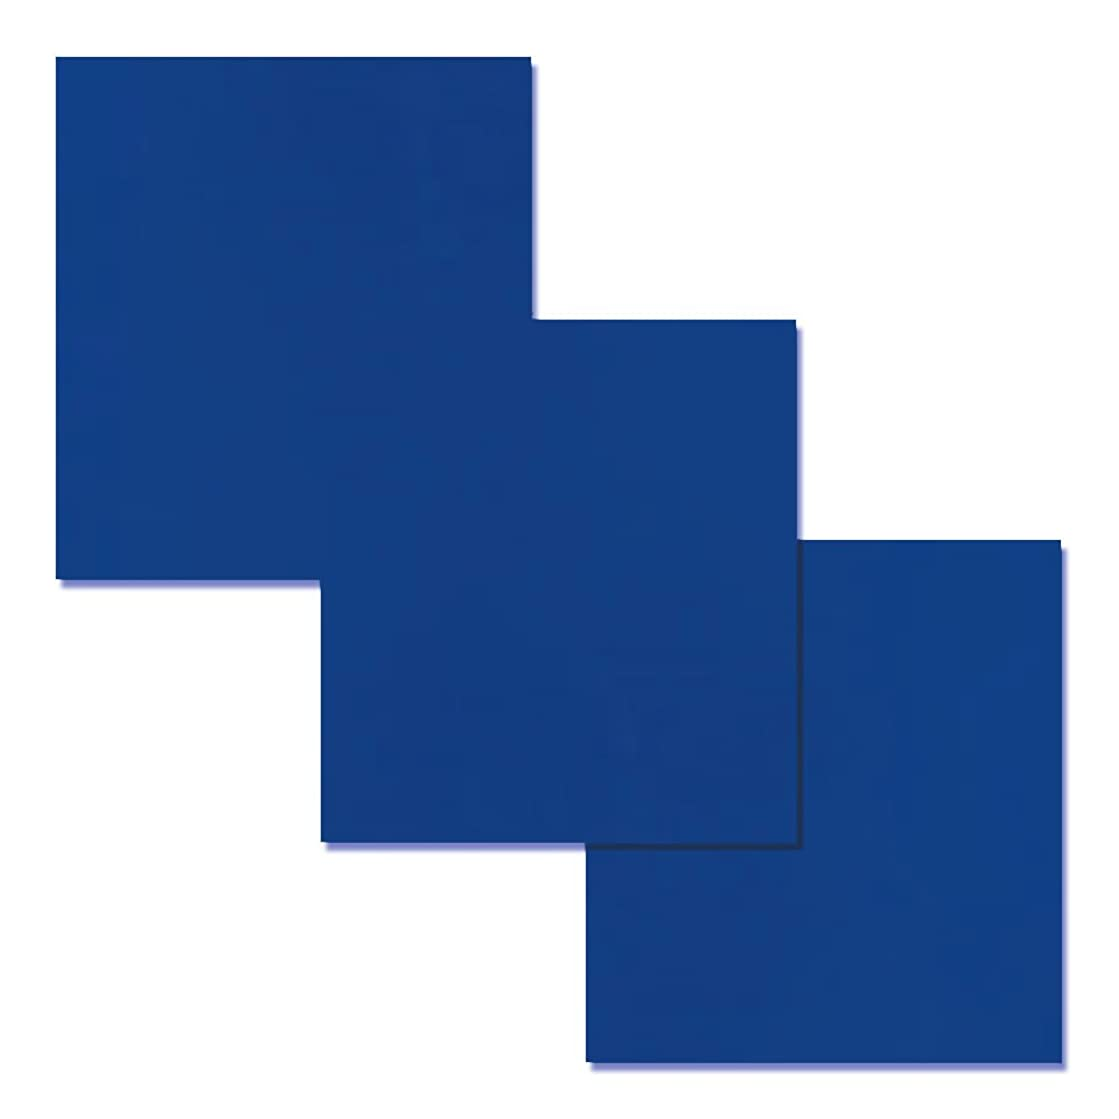 HTV Vinyl Blue Heat Transfer Iron on Sheets for T-Shirt,Bags,Hats, Flat Packing, 12x15 Inches, 3 Pack